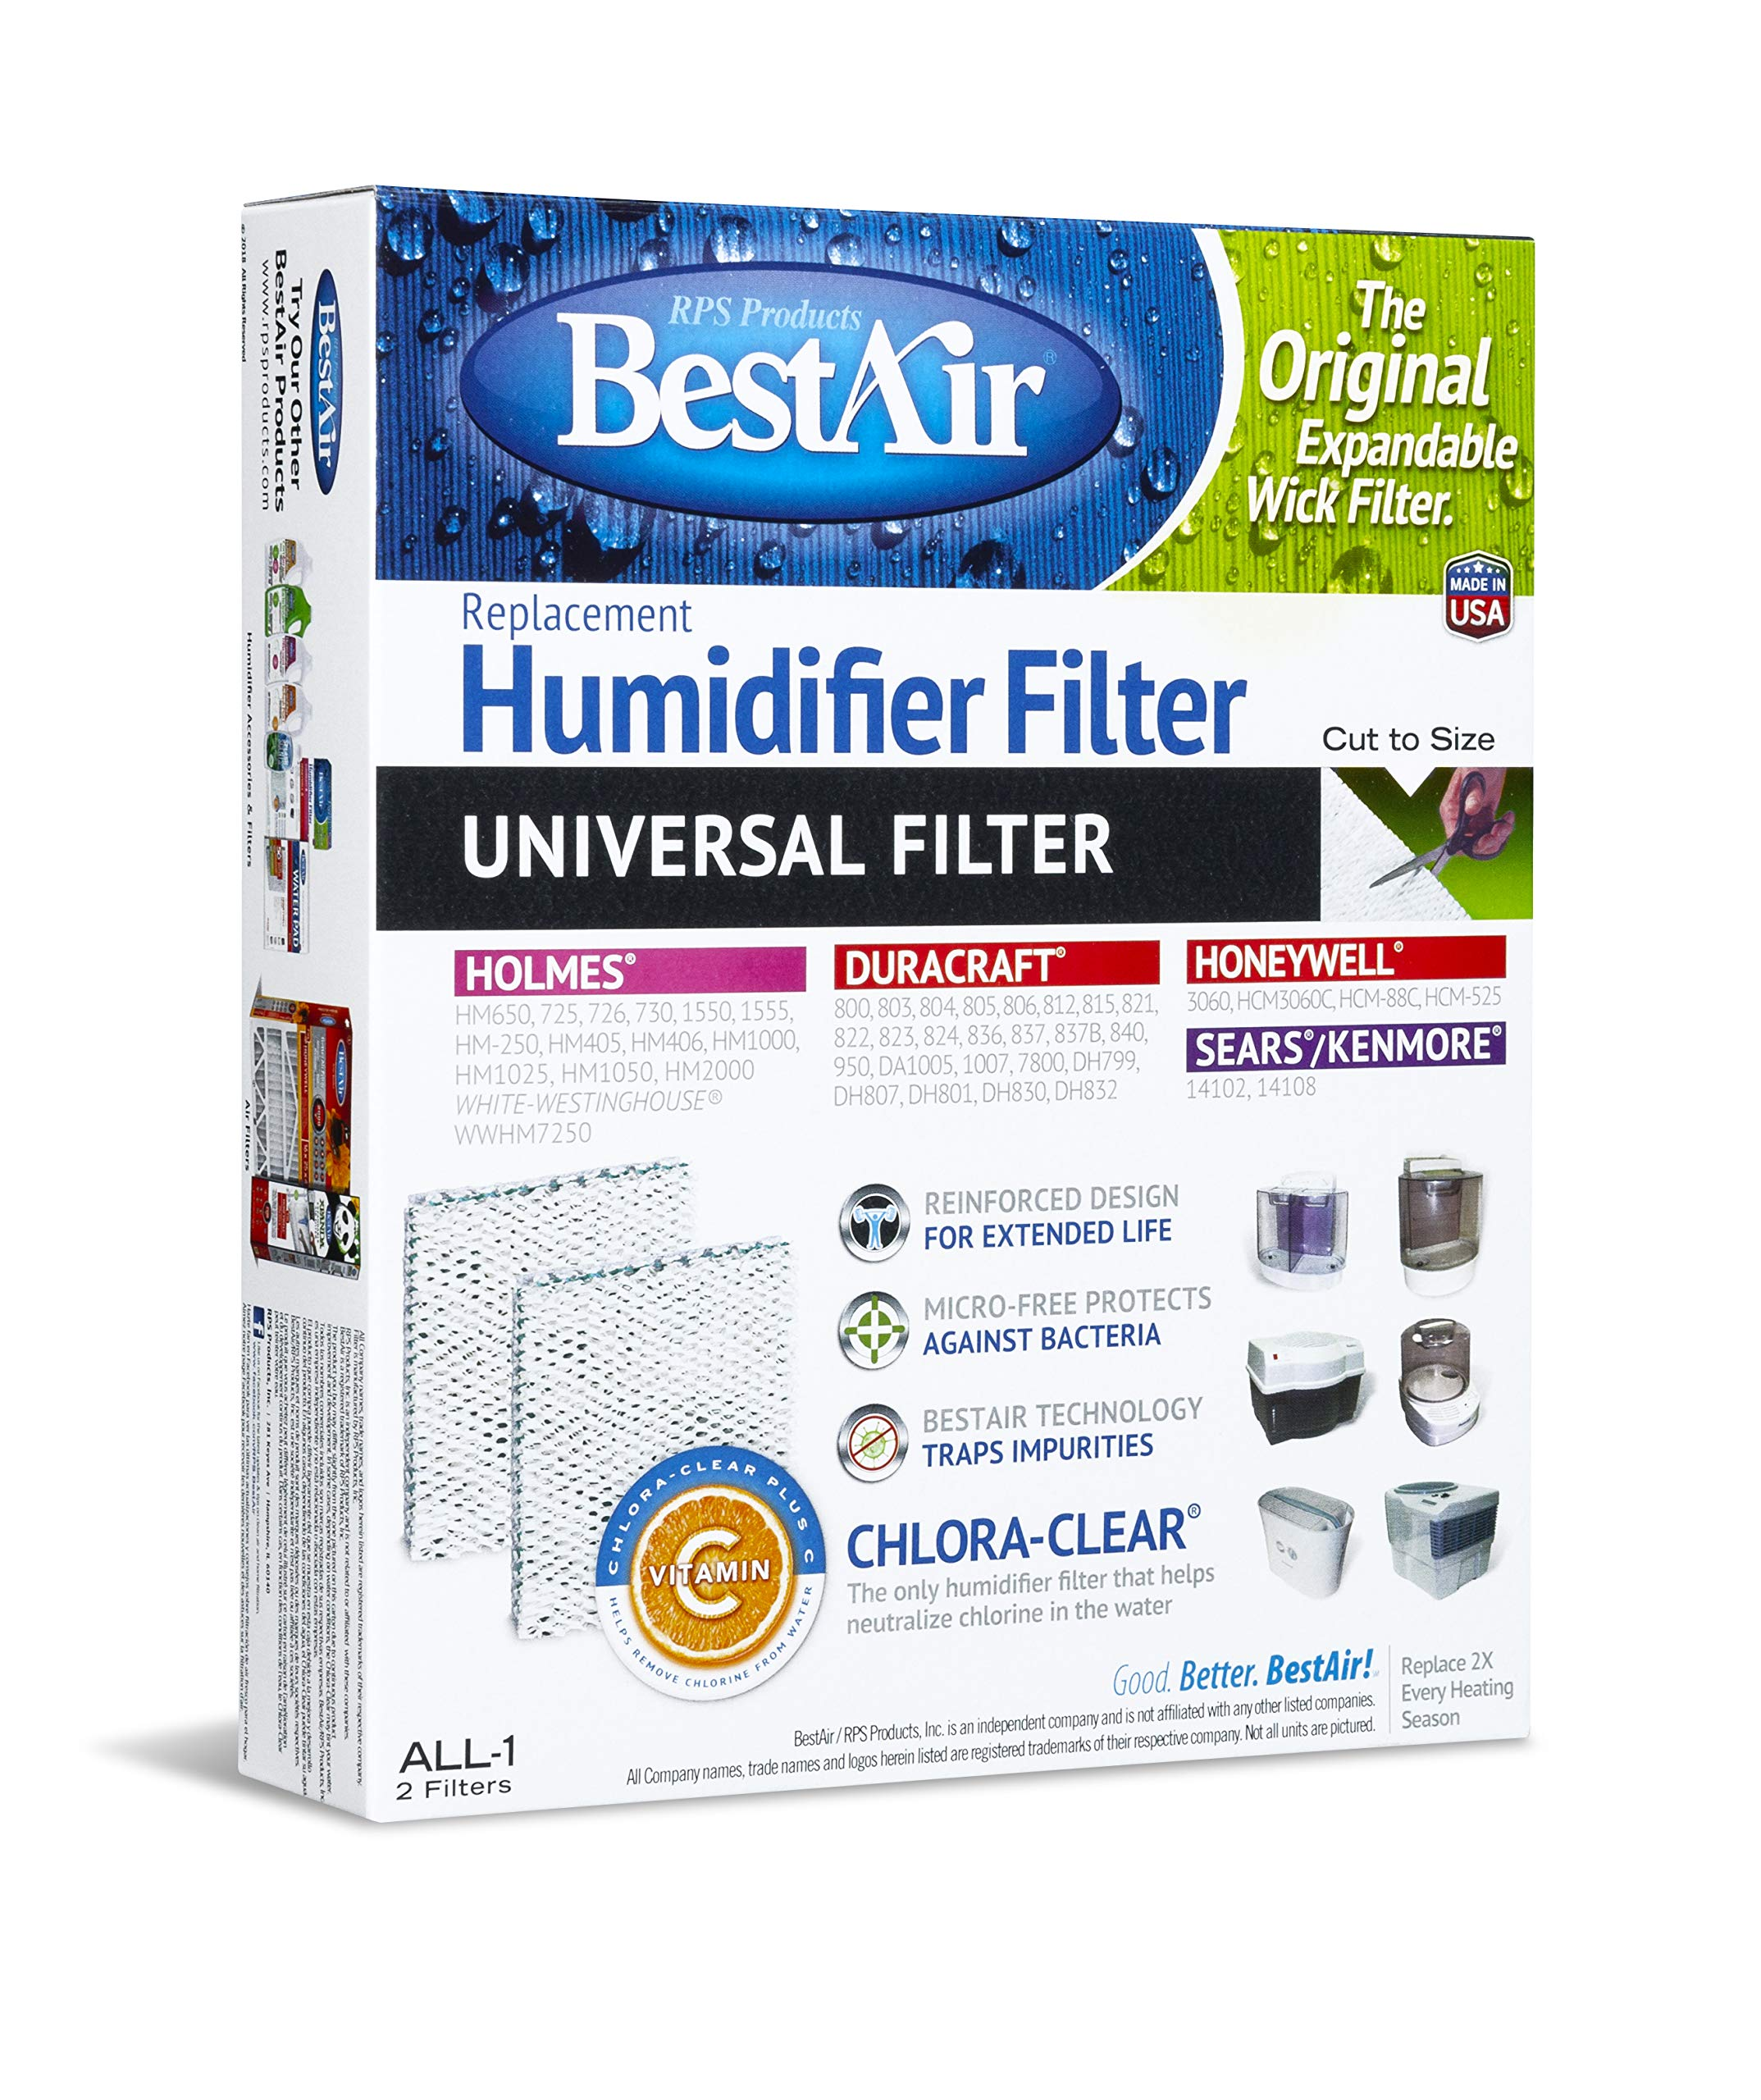 BestAir ALL-1-PDQ-5 Universal Extended Life Humidifier Replacement Paper Wick Filter, For Duracraft Humidifiers, 7.2'' x 9.6'' x 1.9'', 5 Pack (10 Filters) by BestAir